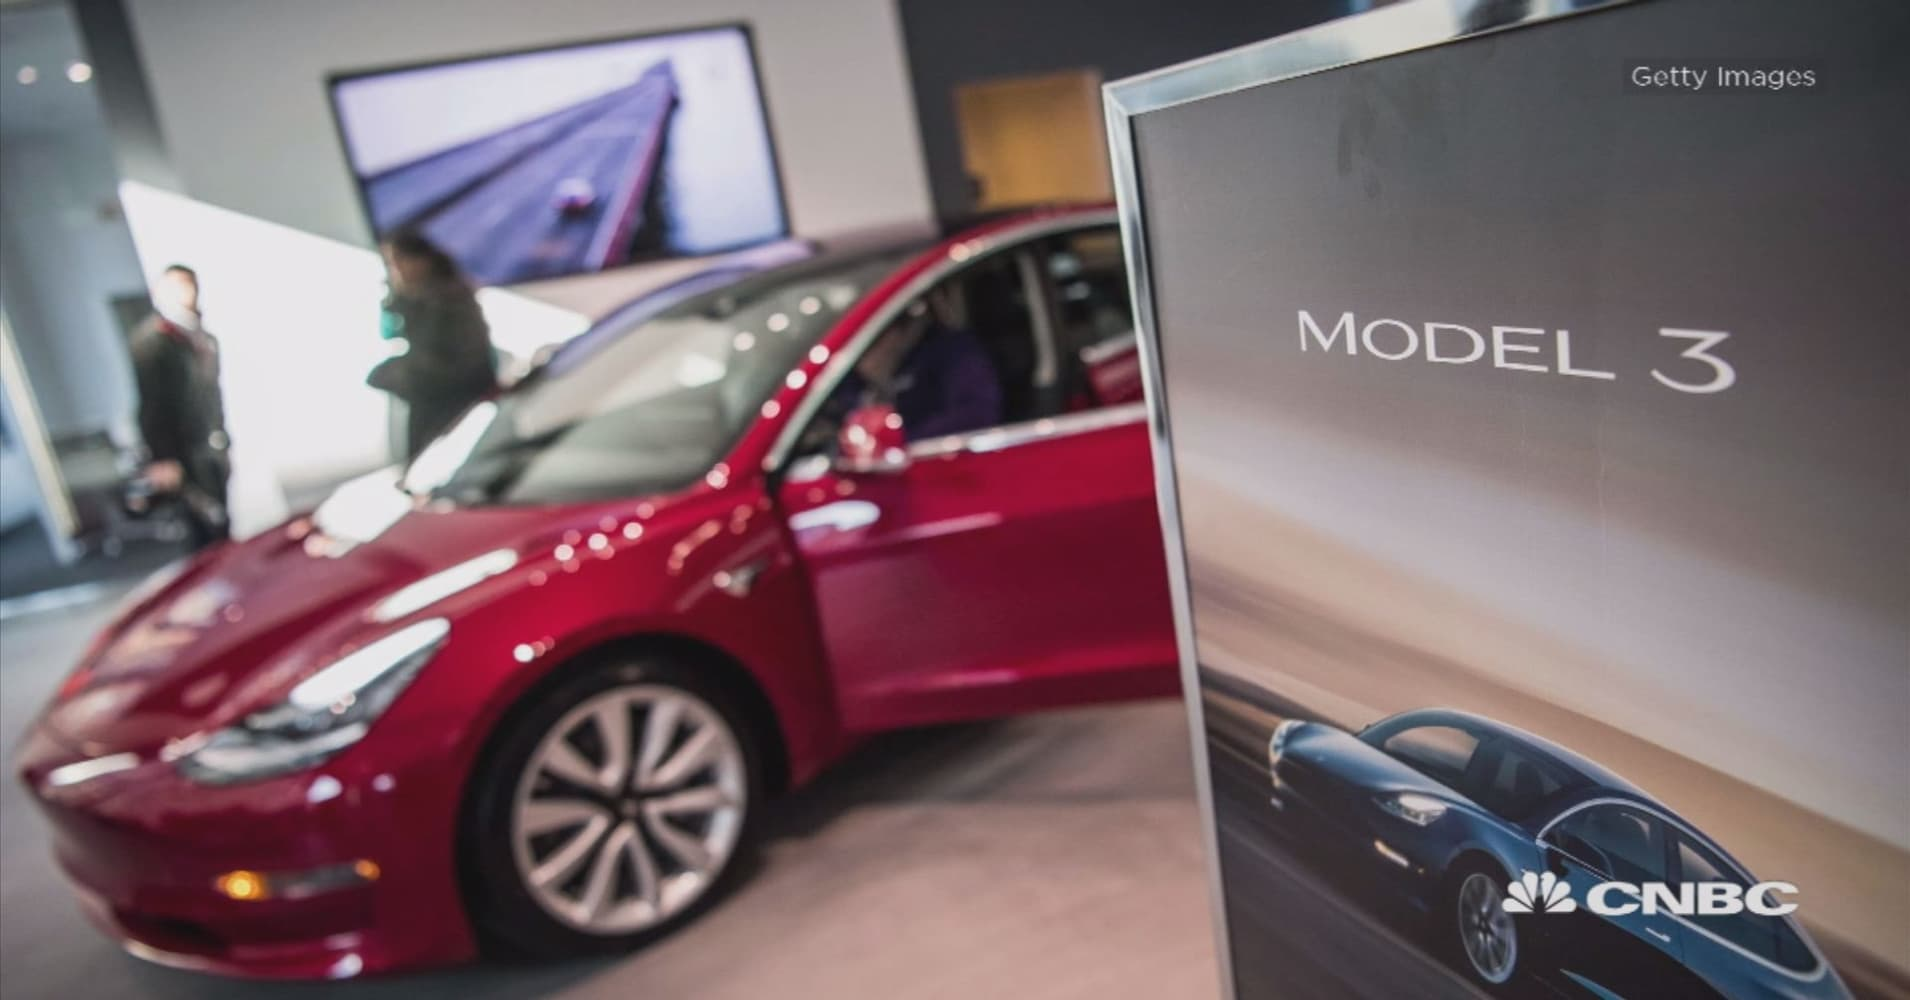 Consumer Reports says Tesla Model 3 is fun to drive, but has some flaws